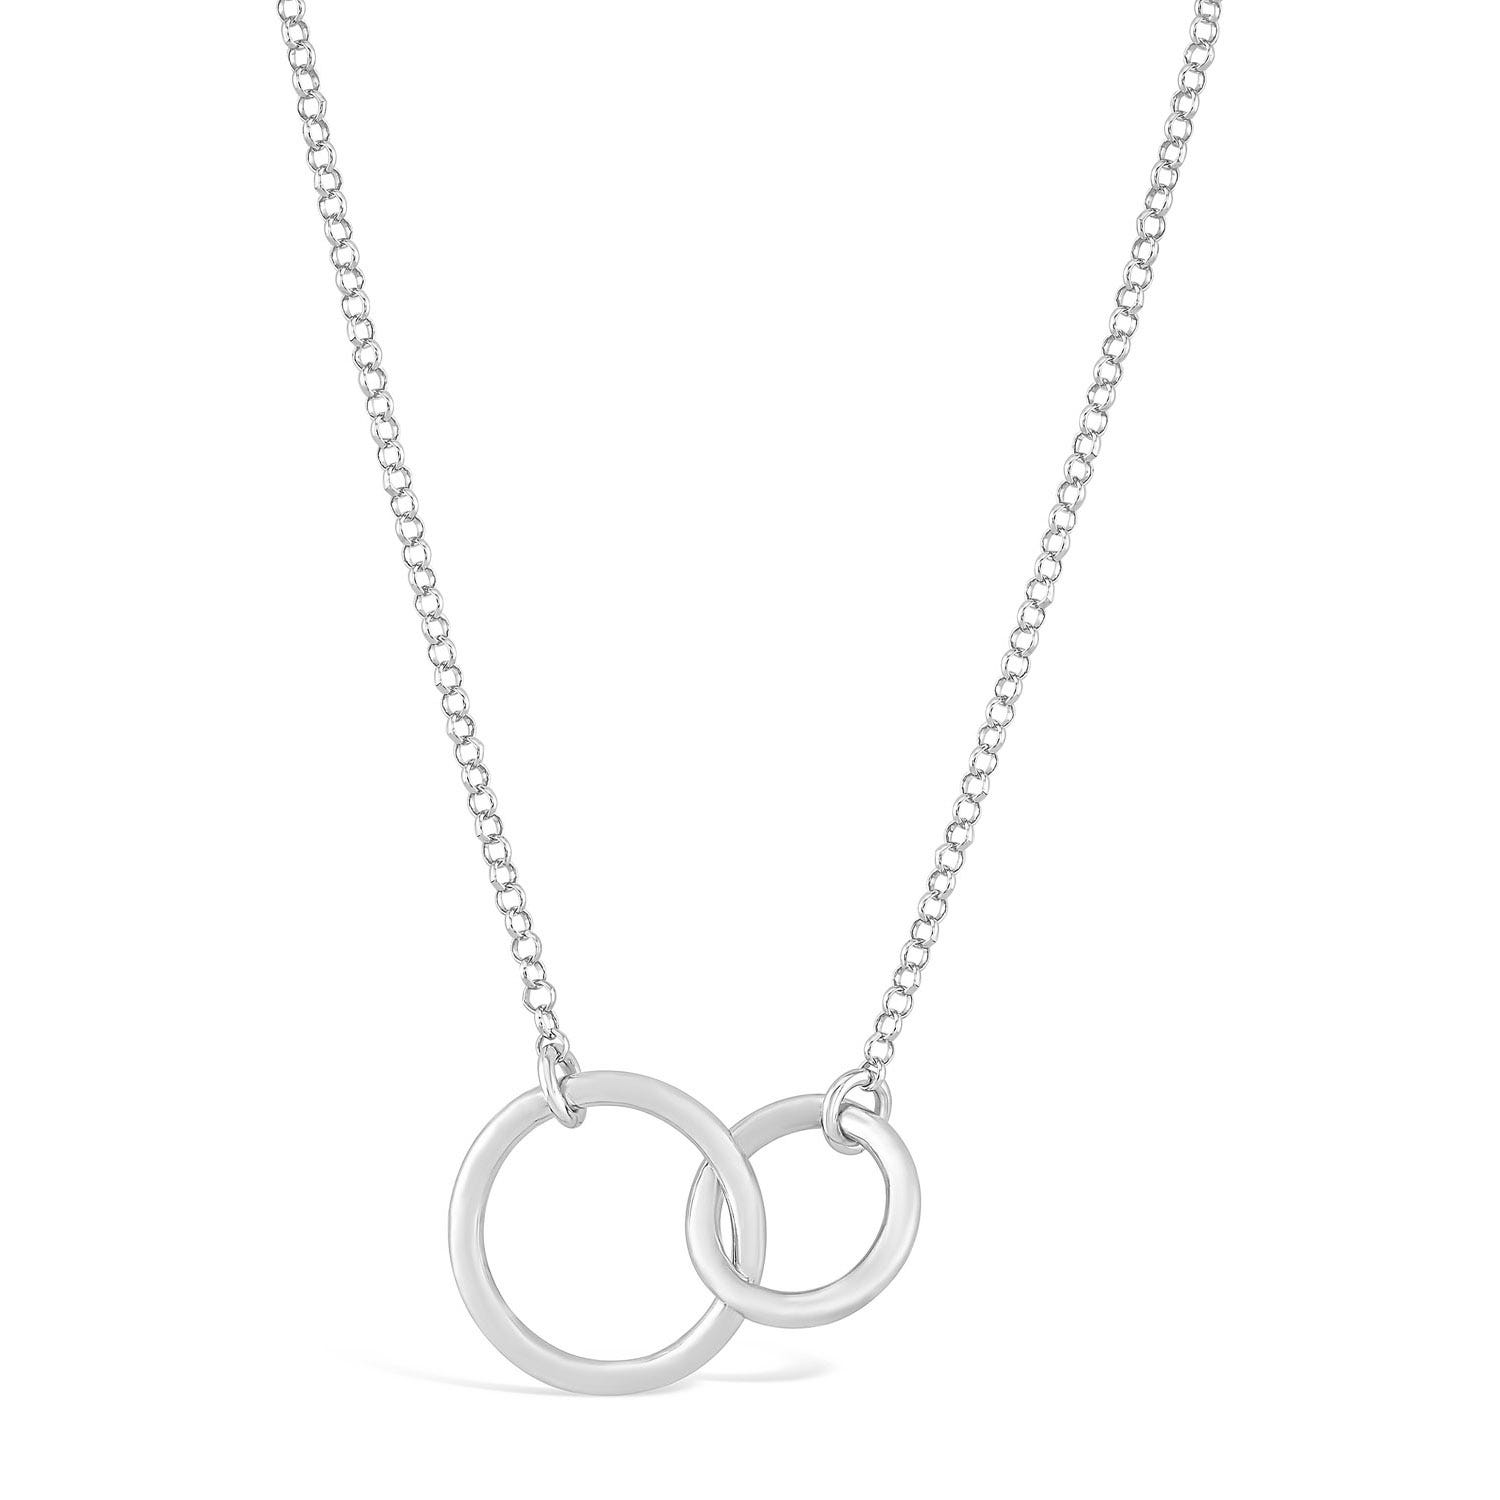 Ladies Double Interlocking Circle Sterling Silver Necklace